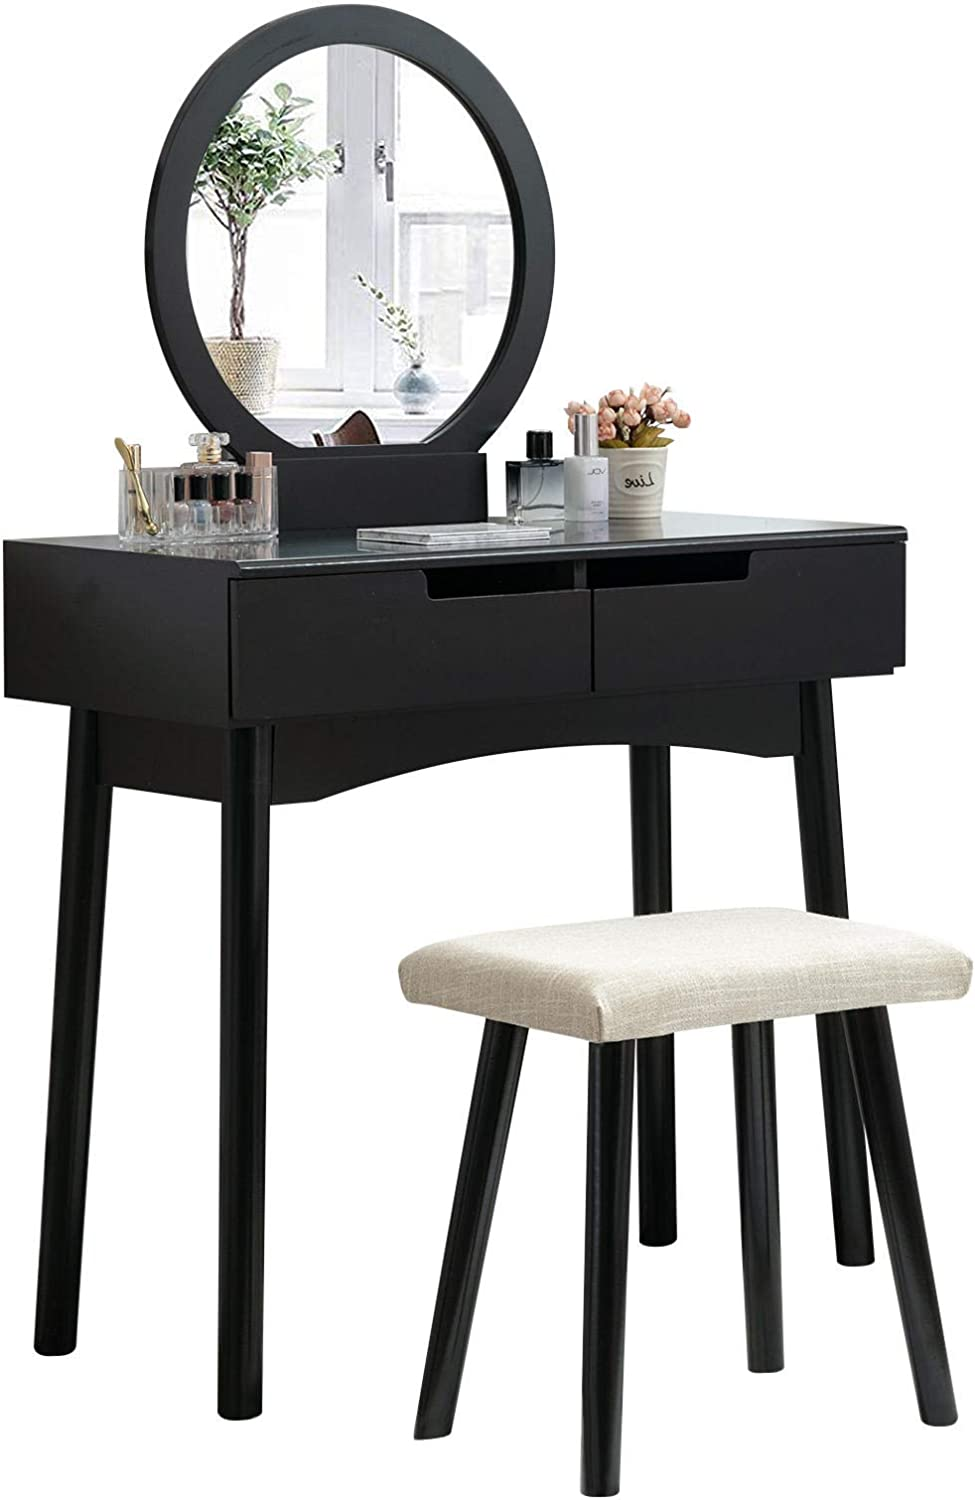 Unihome Vanity Table Set Makeup Table with Round Mirror and Stool Small Dressing Tables with Drawers Makeup Vanity Table Black-26, 2Drawers